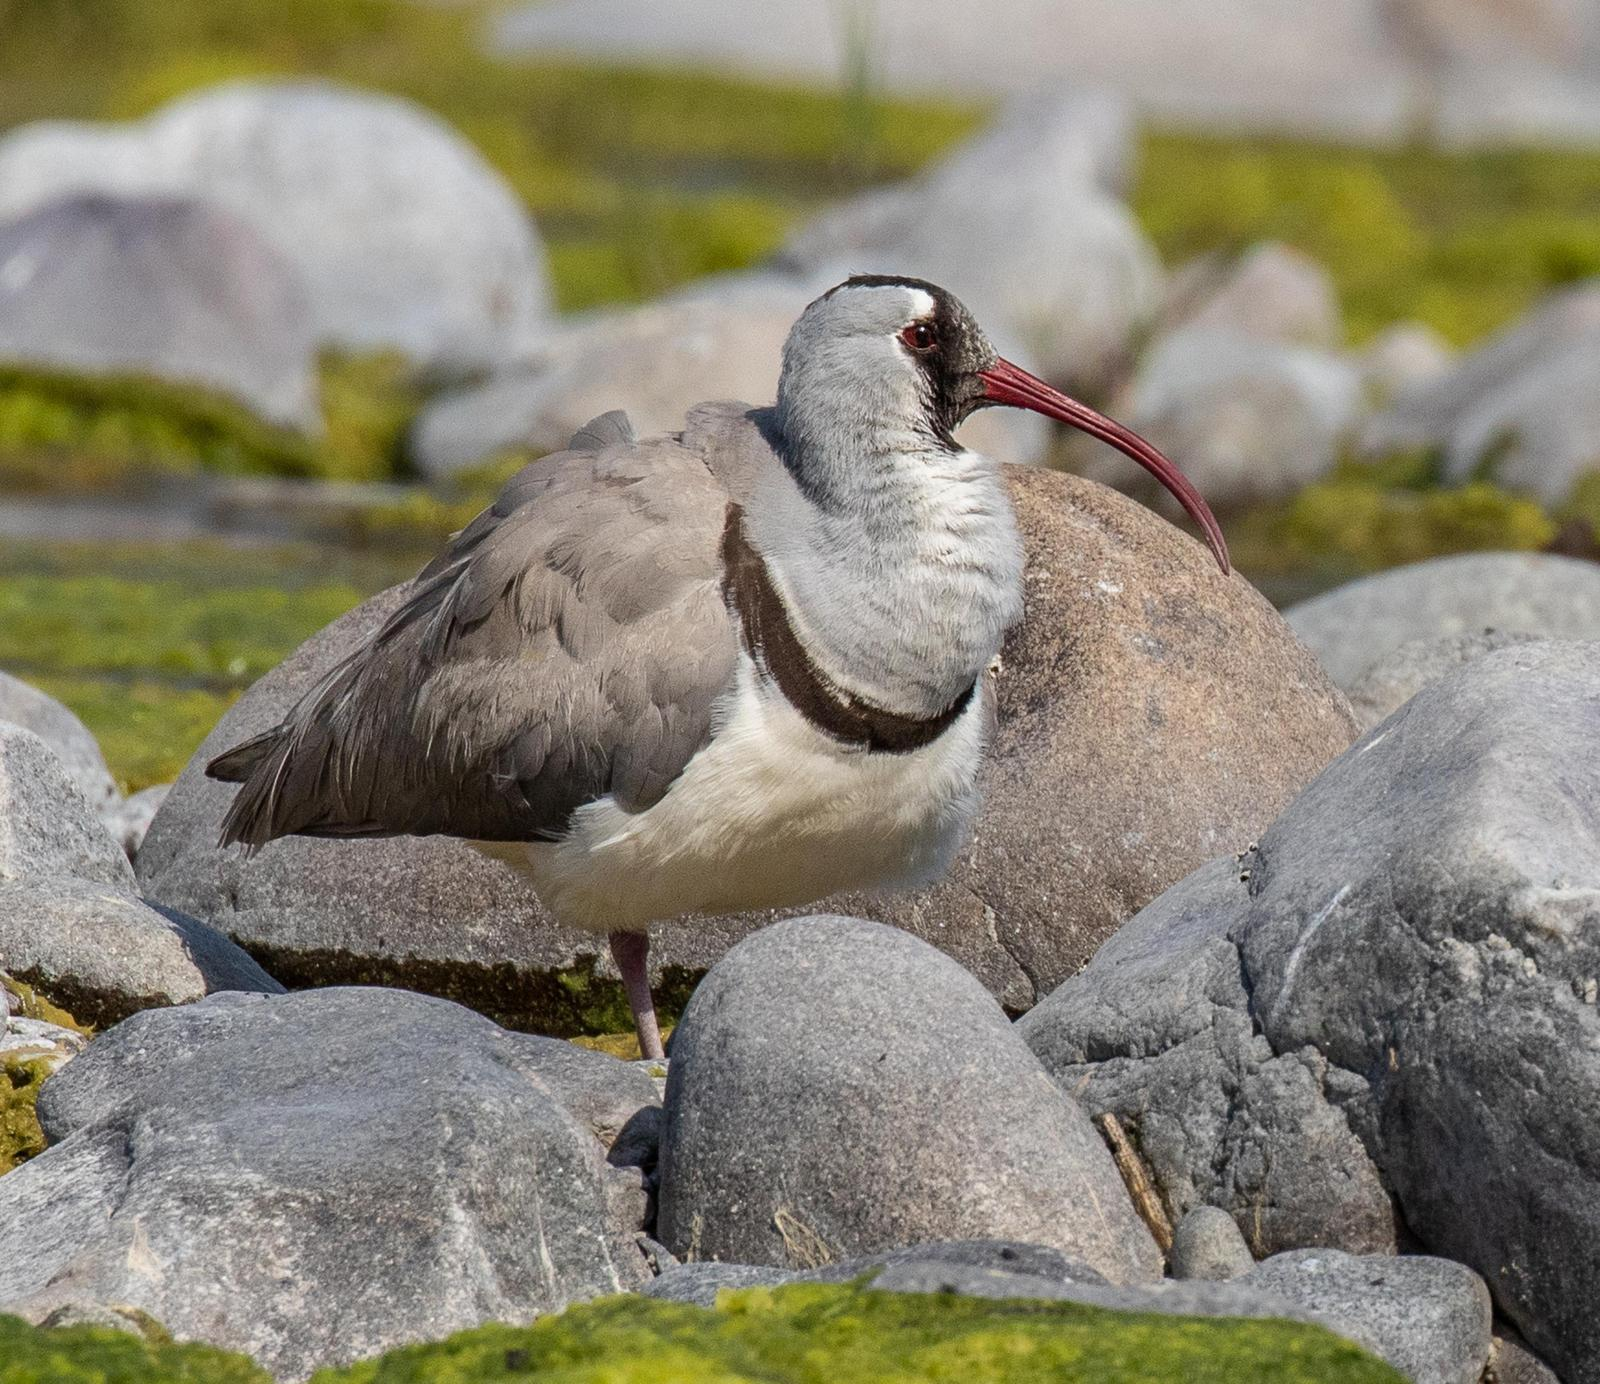 Ibisbill Photo by Kate Persons